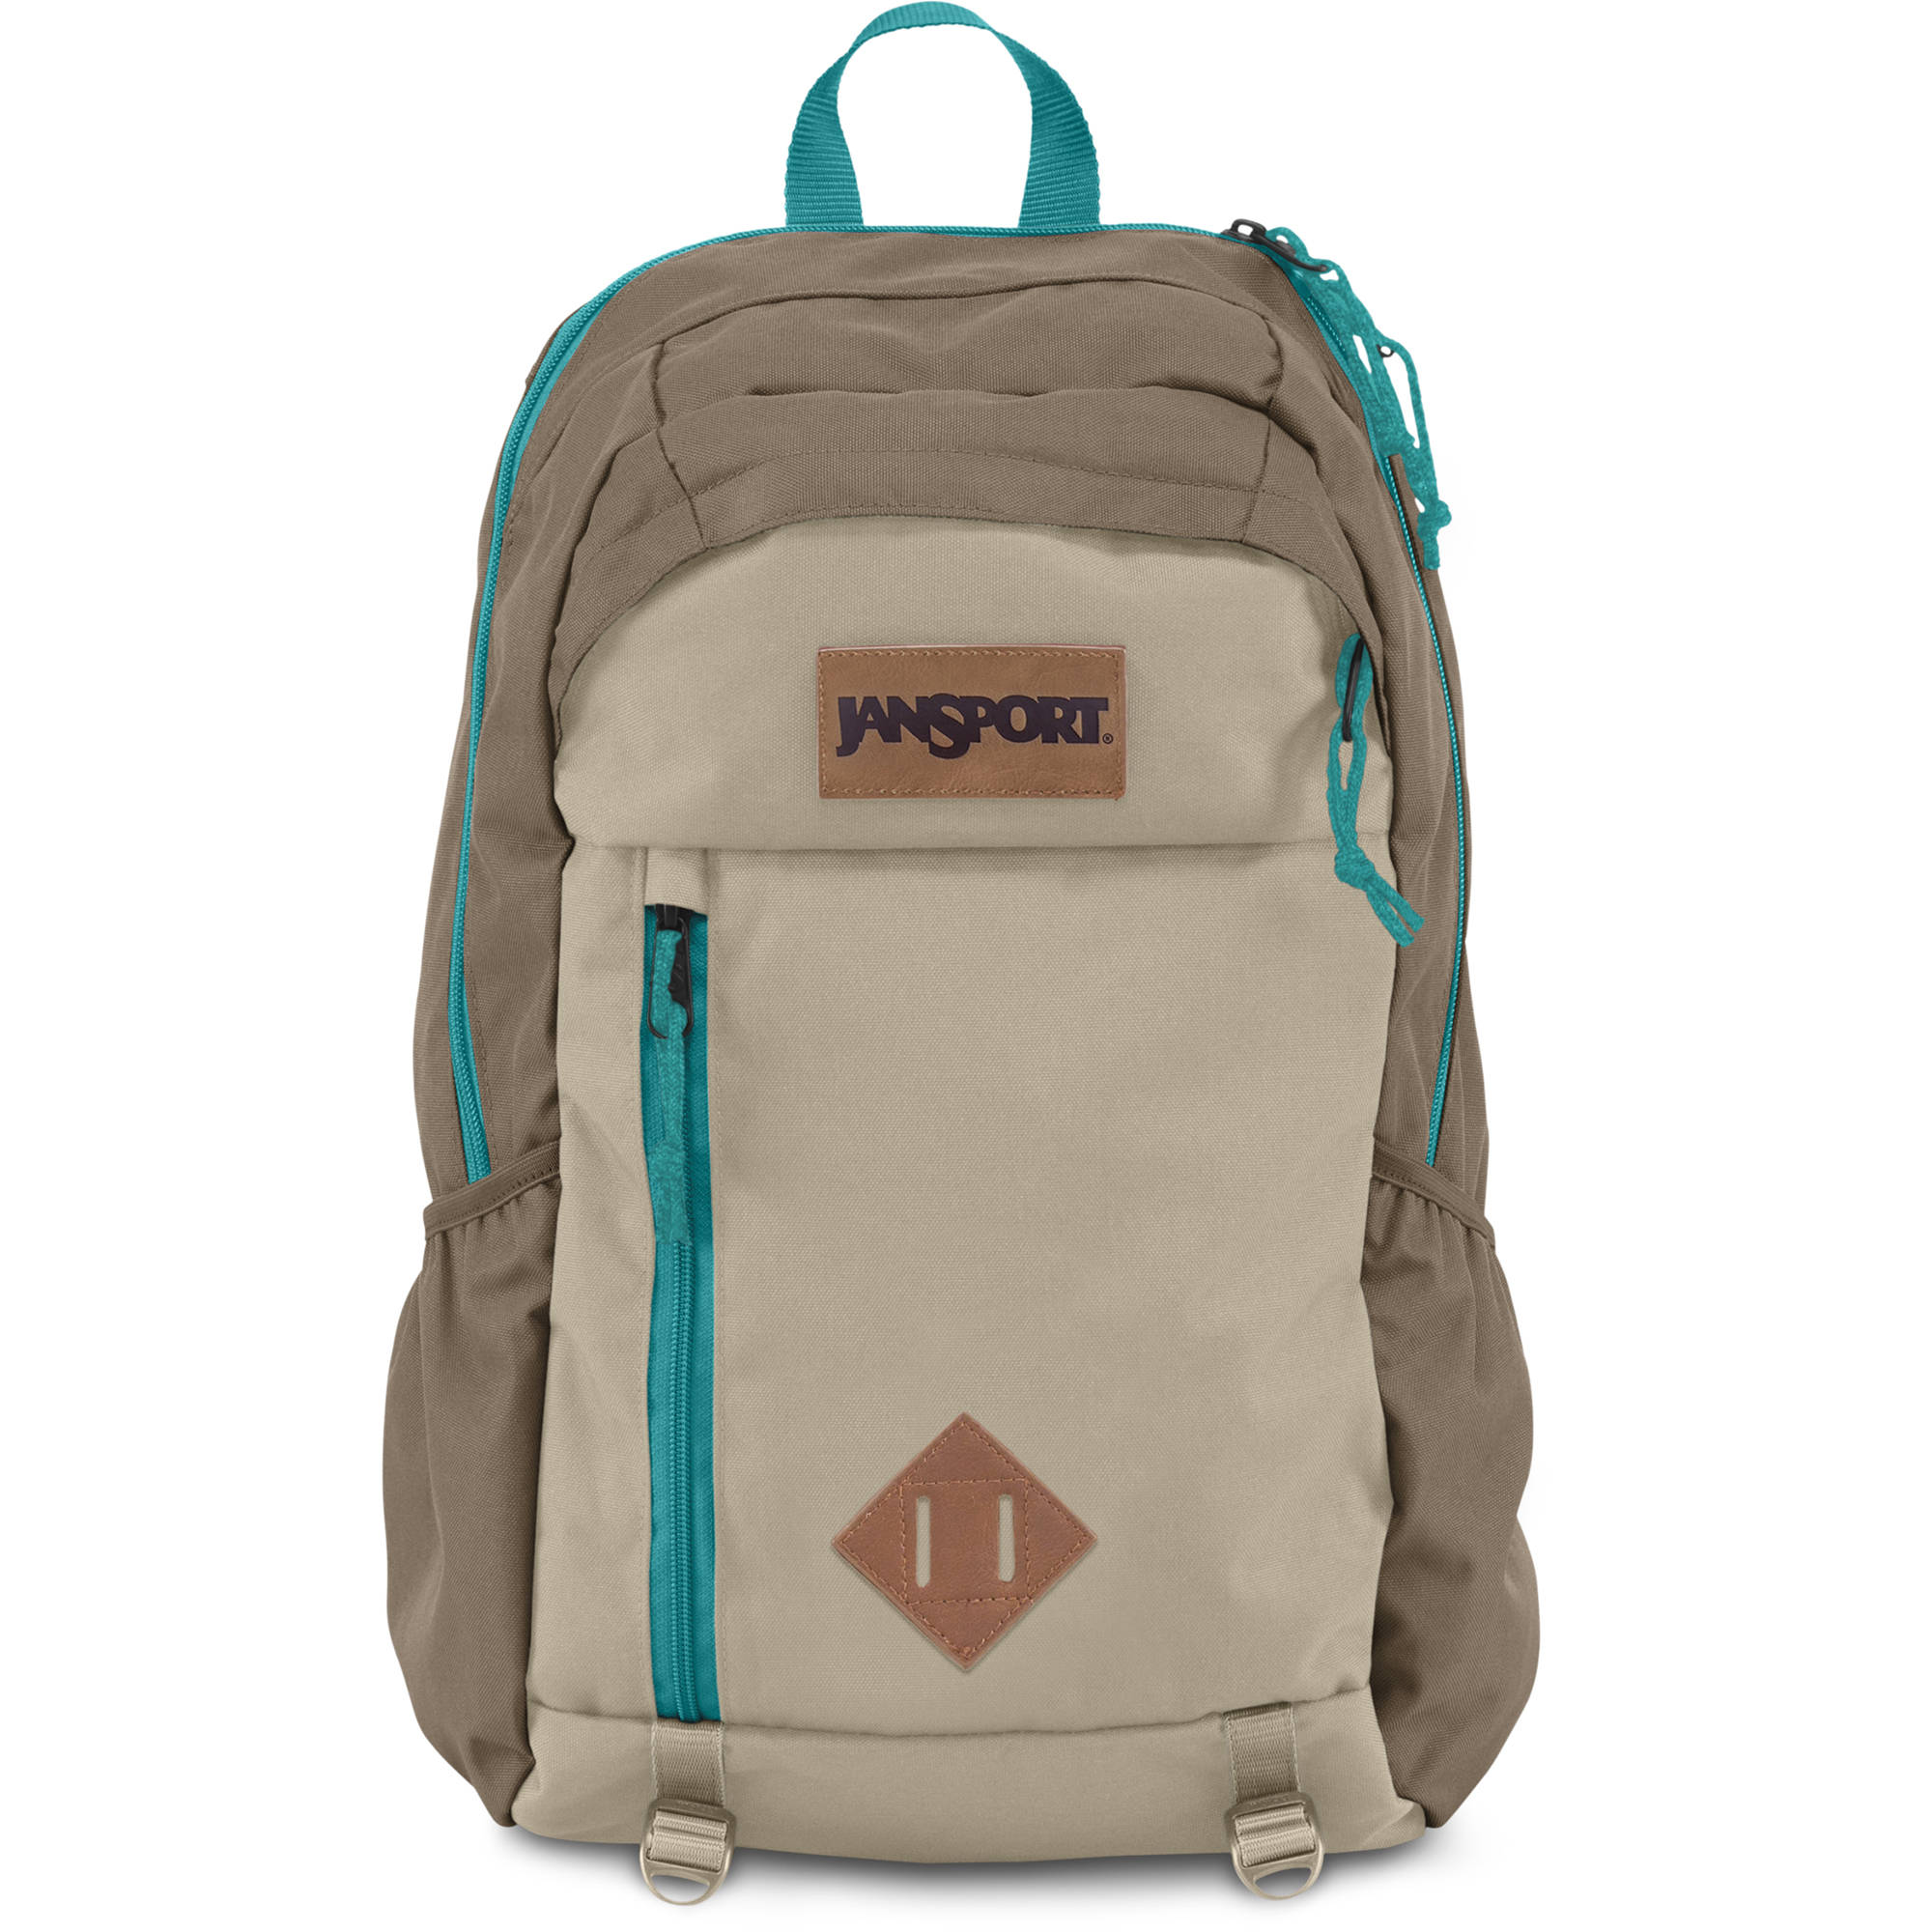 Where To Buy Jansport Backpacks In Philippines - Backpack Her